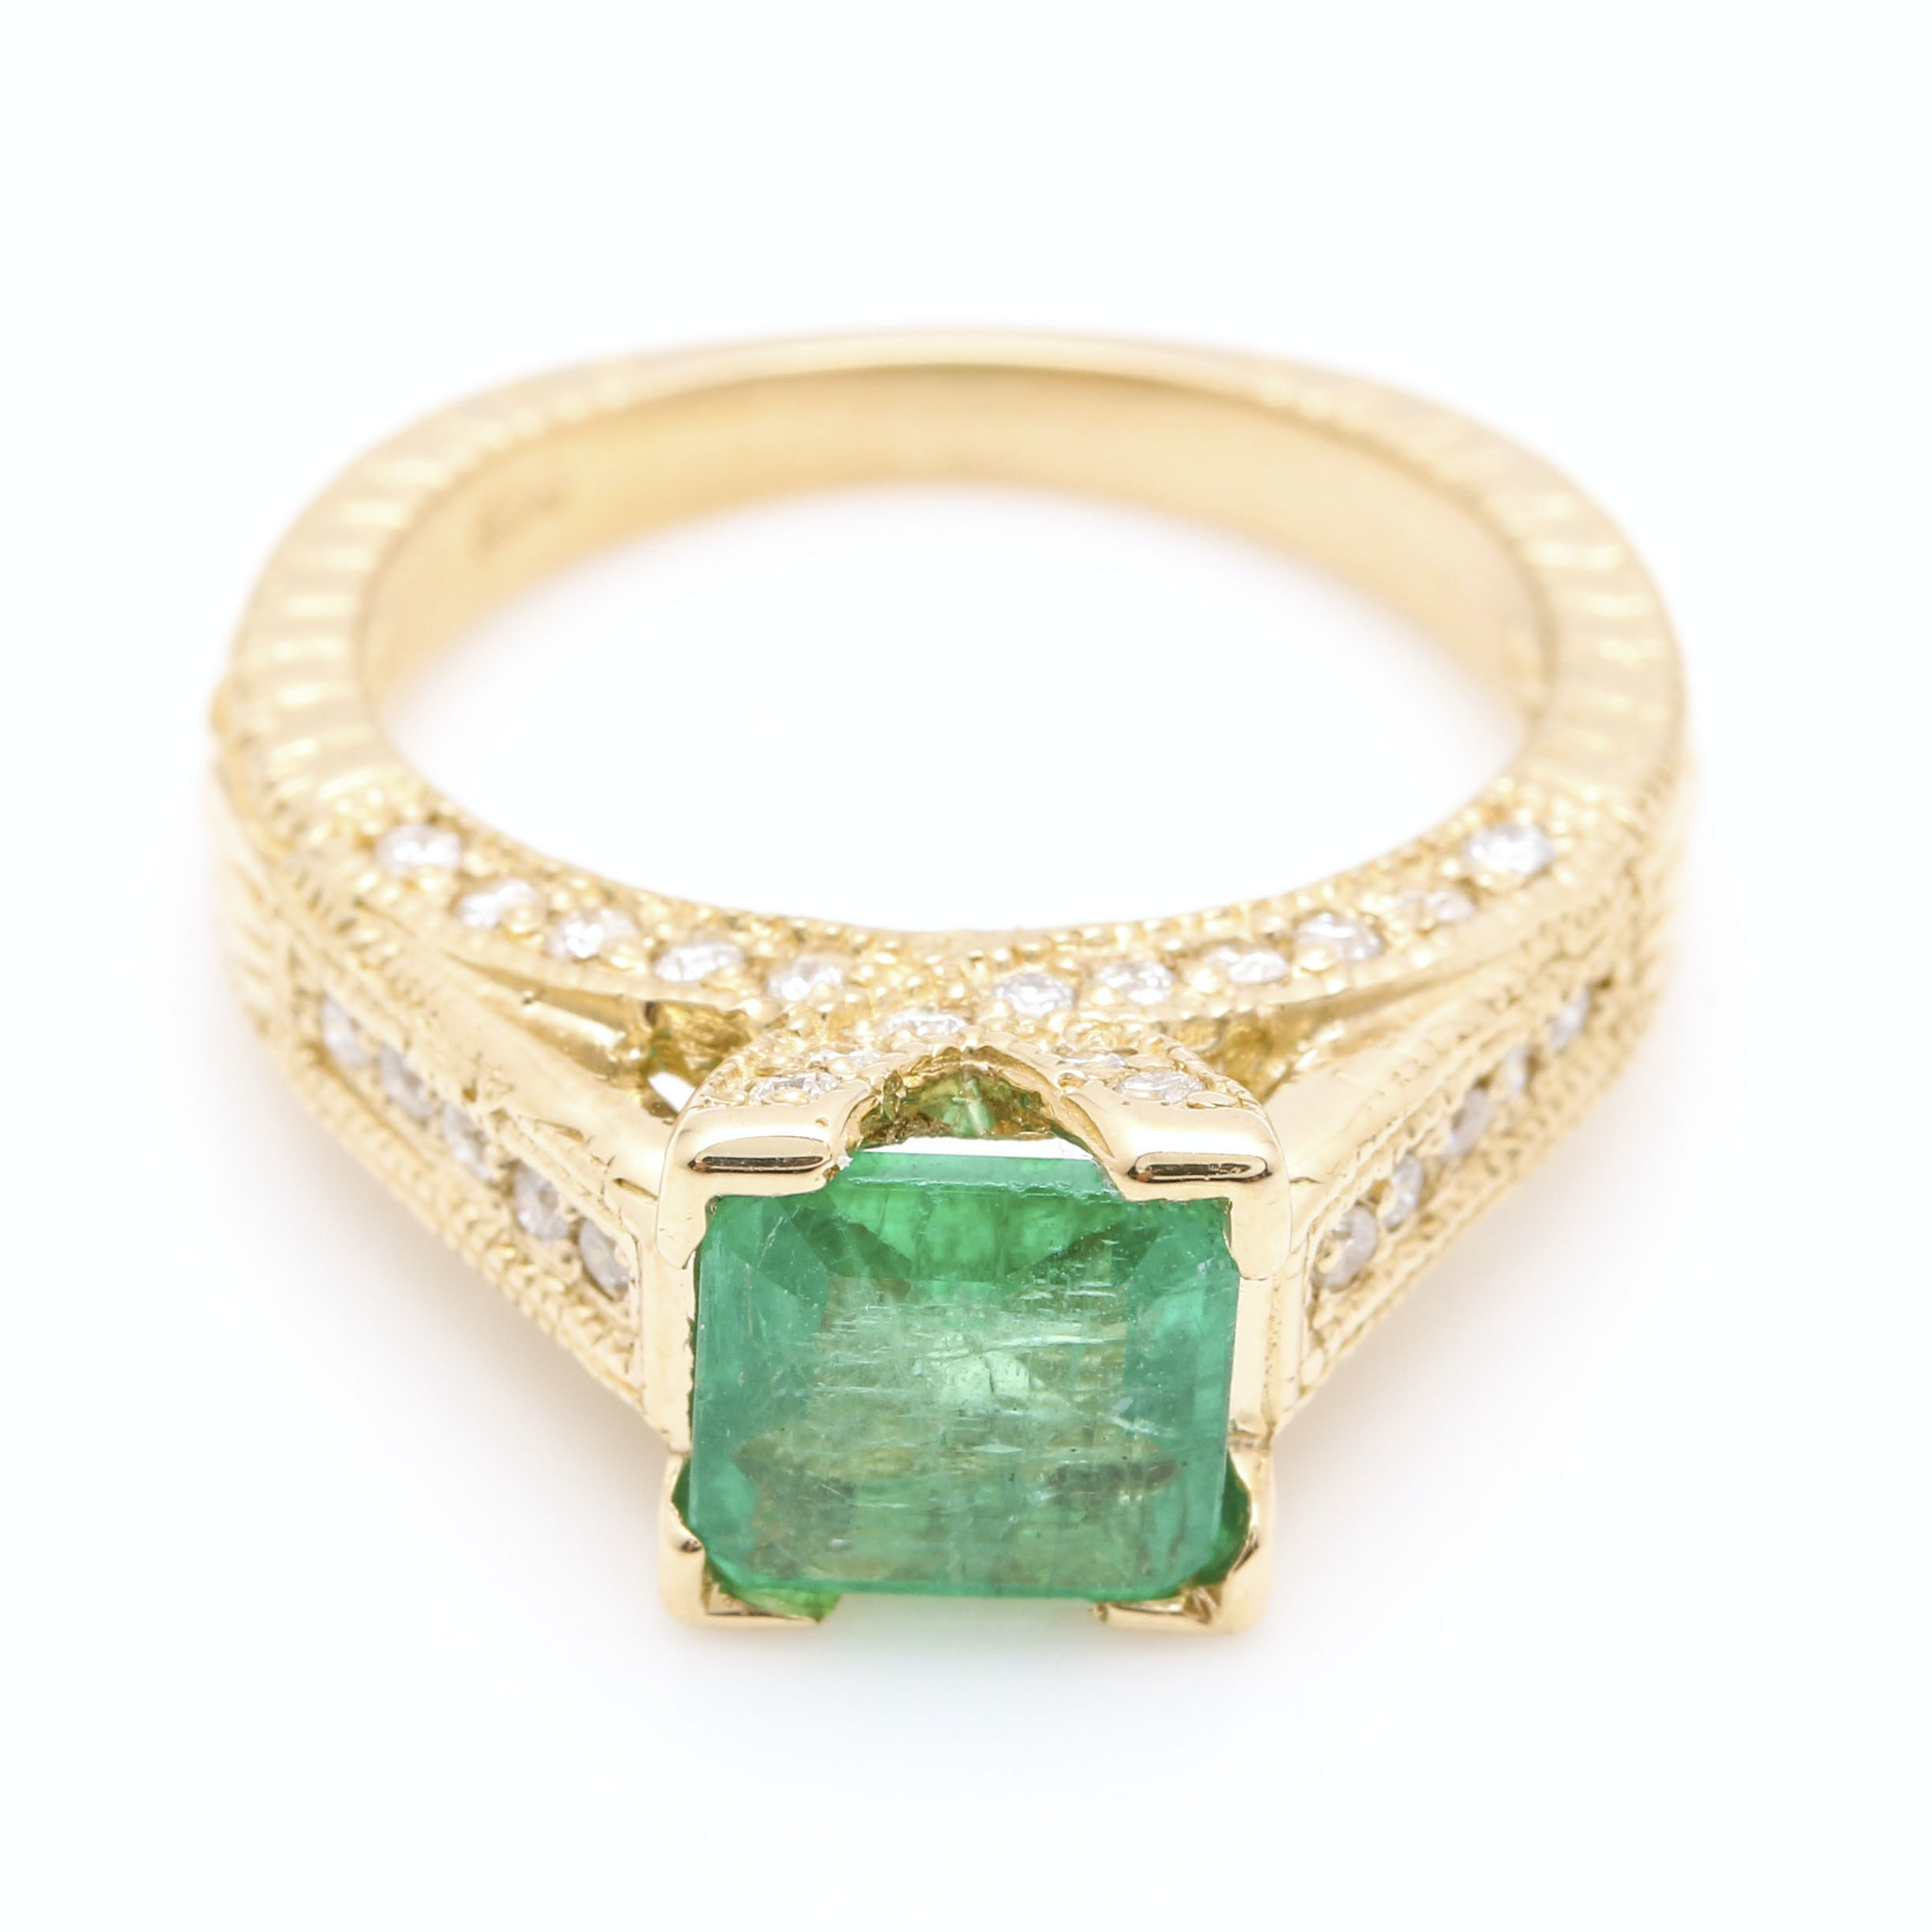 14K Yellow Gold 1.21 CT Emerald and Diamond Ring